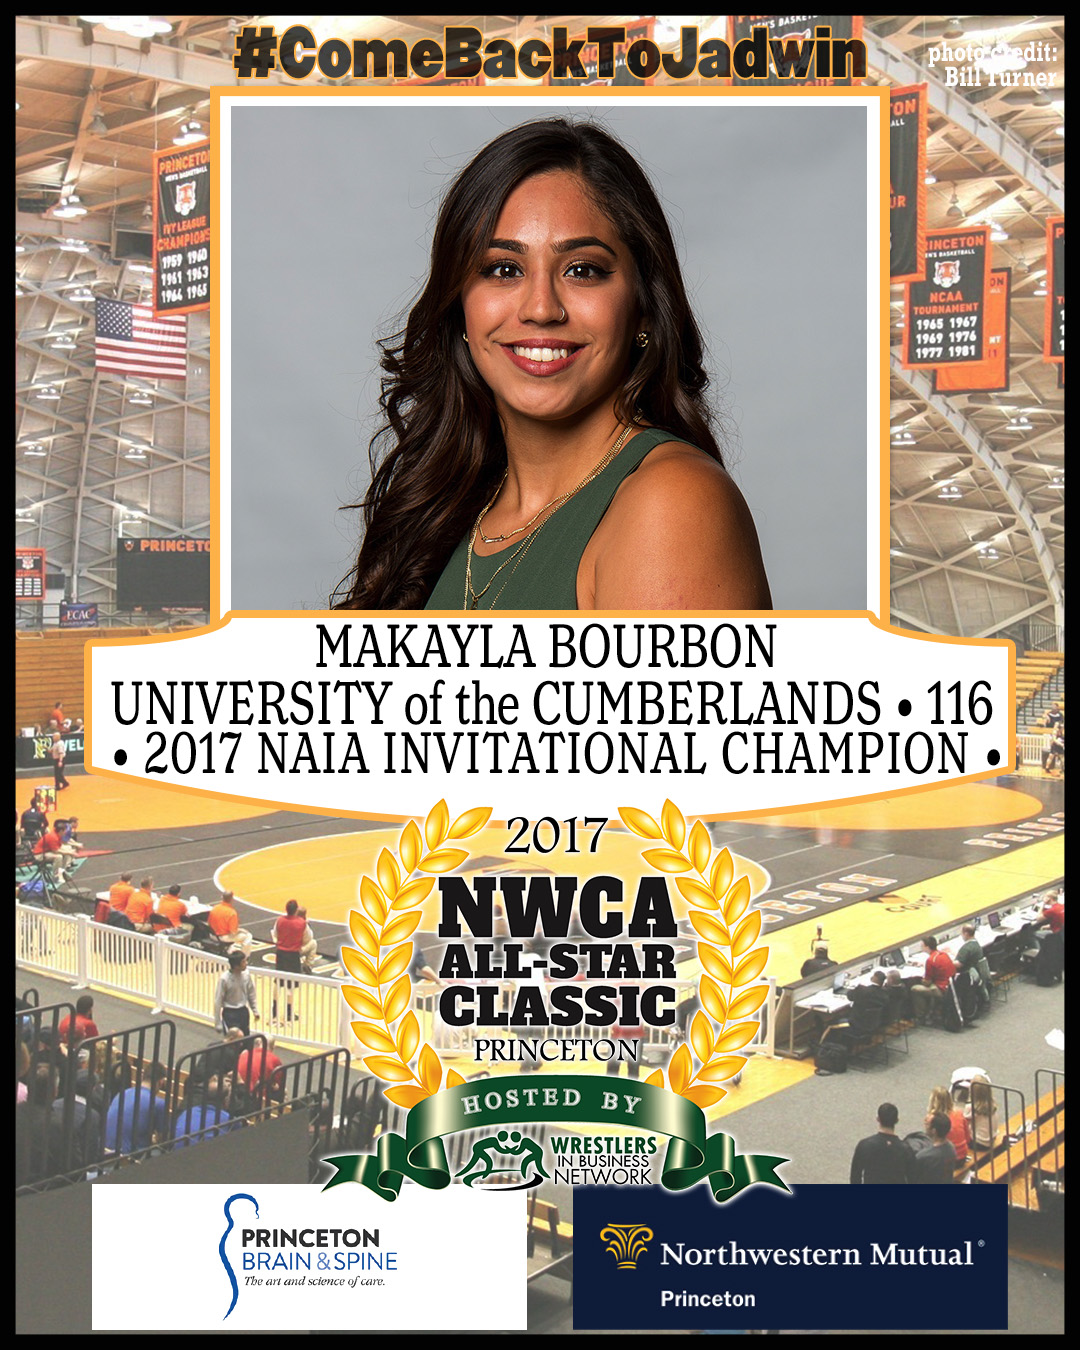 2017 All Star Classic Social Media Graphic_MAKAYLA_BOURBON.jpg